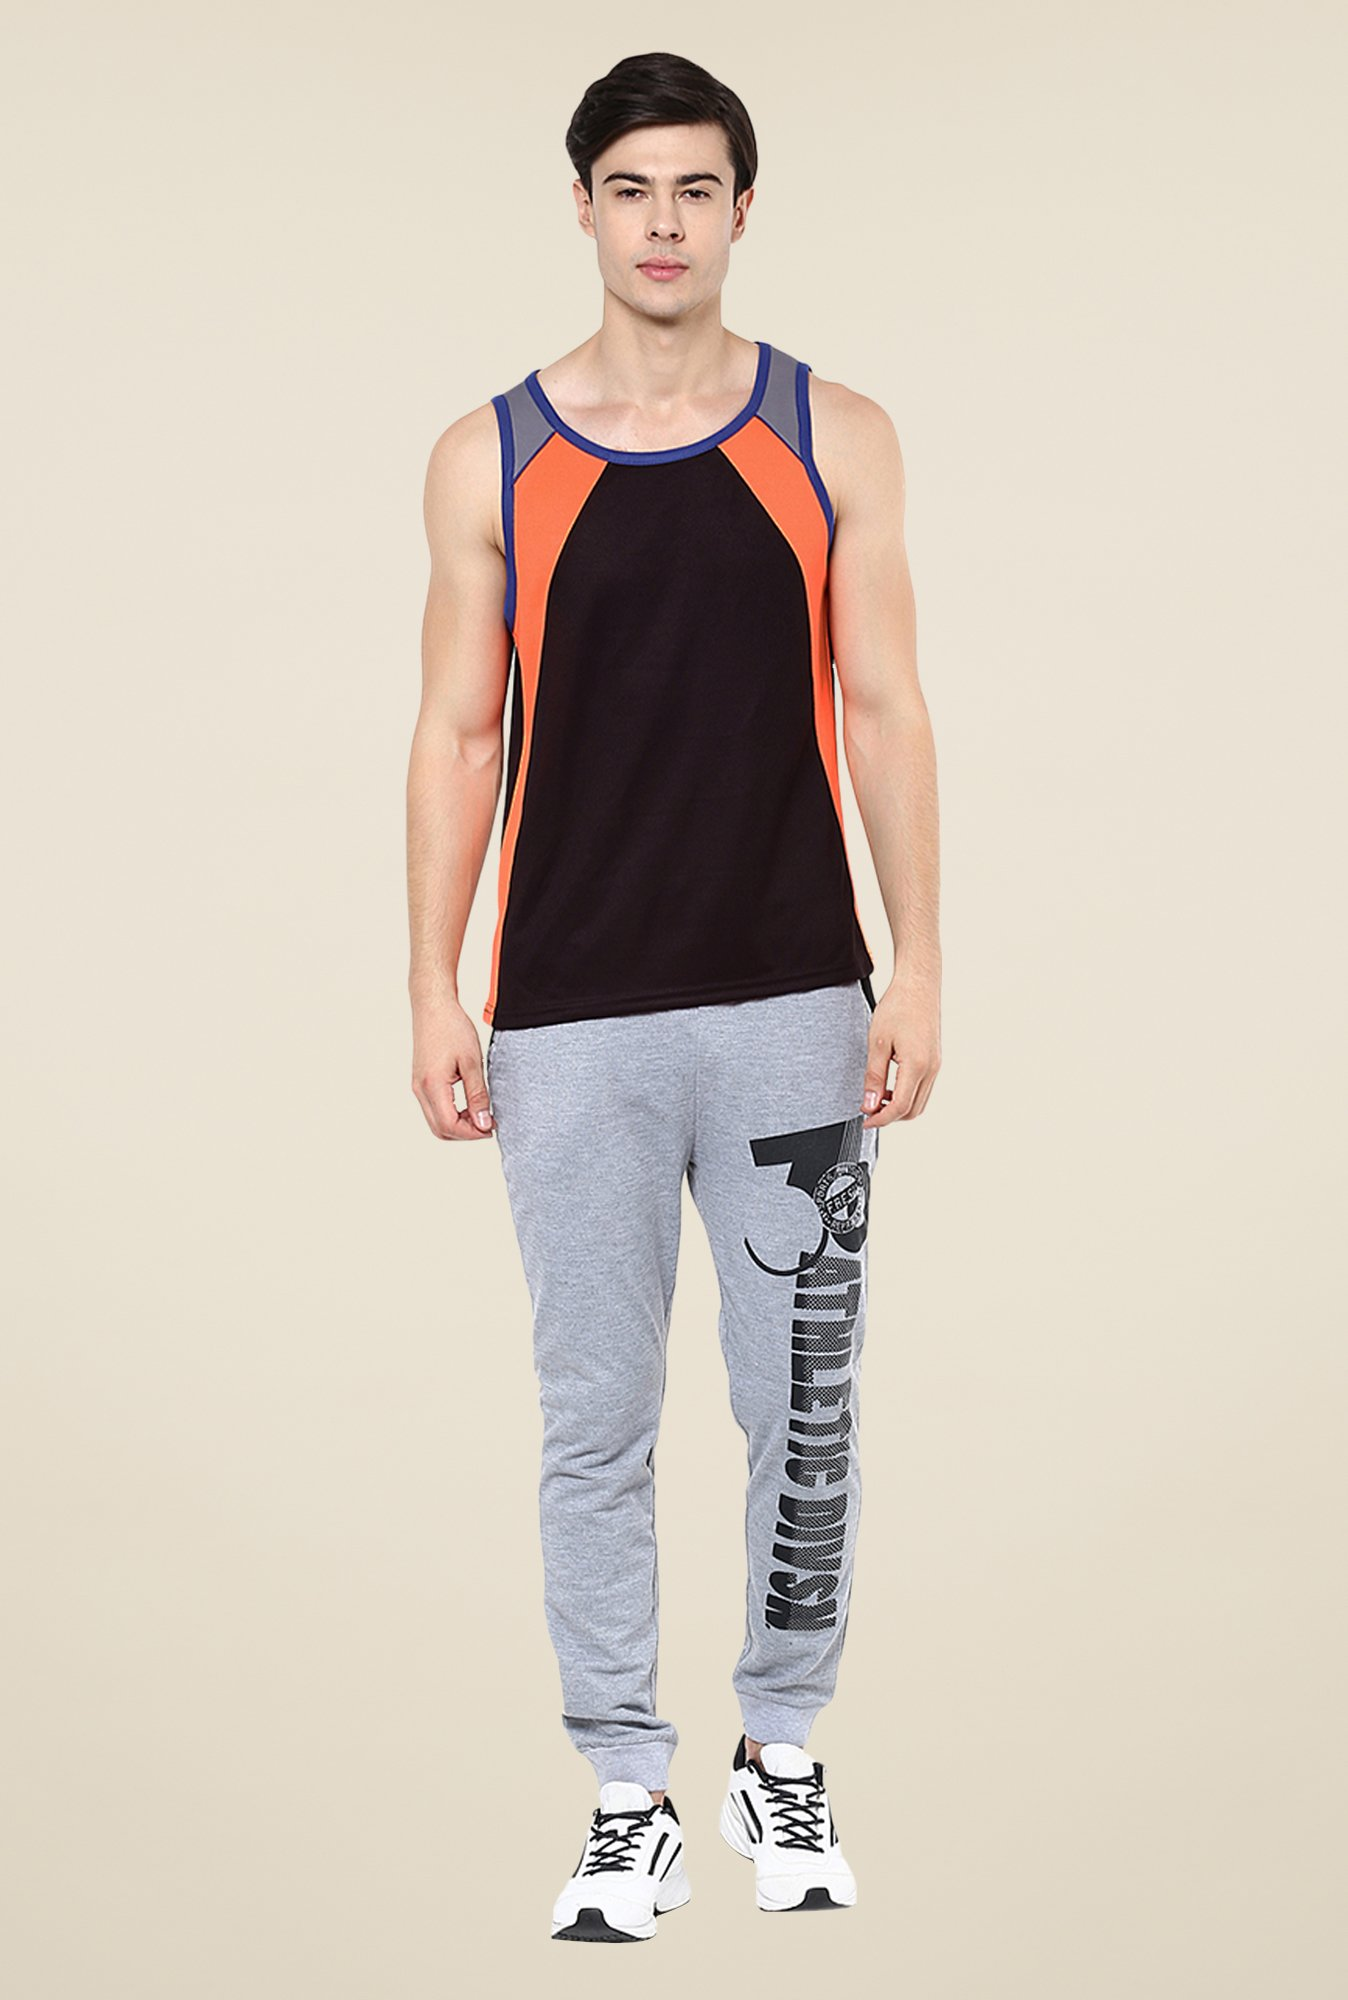 Yepme Black Crosby Muscle Vest